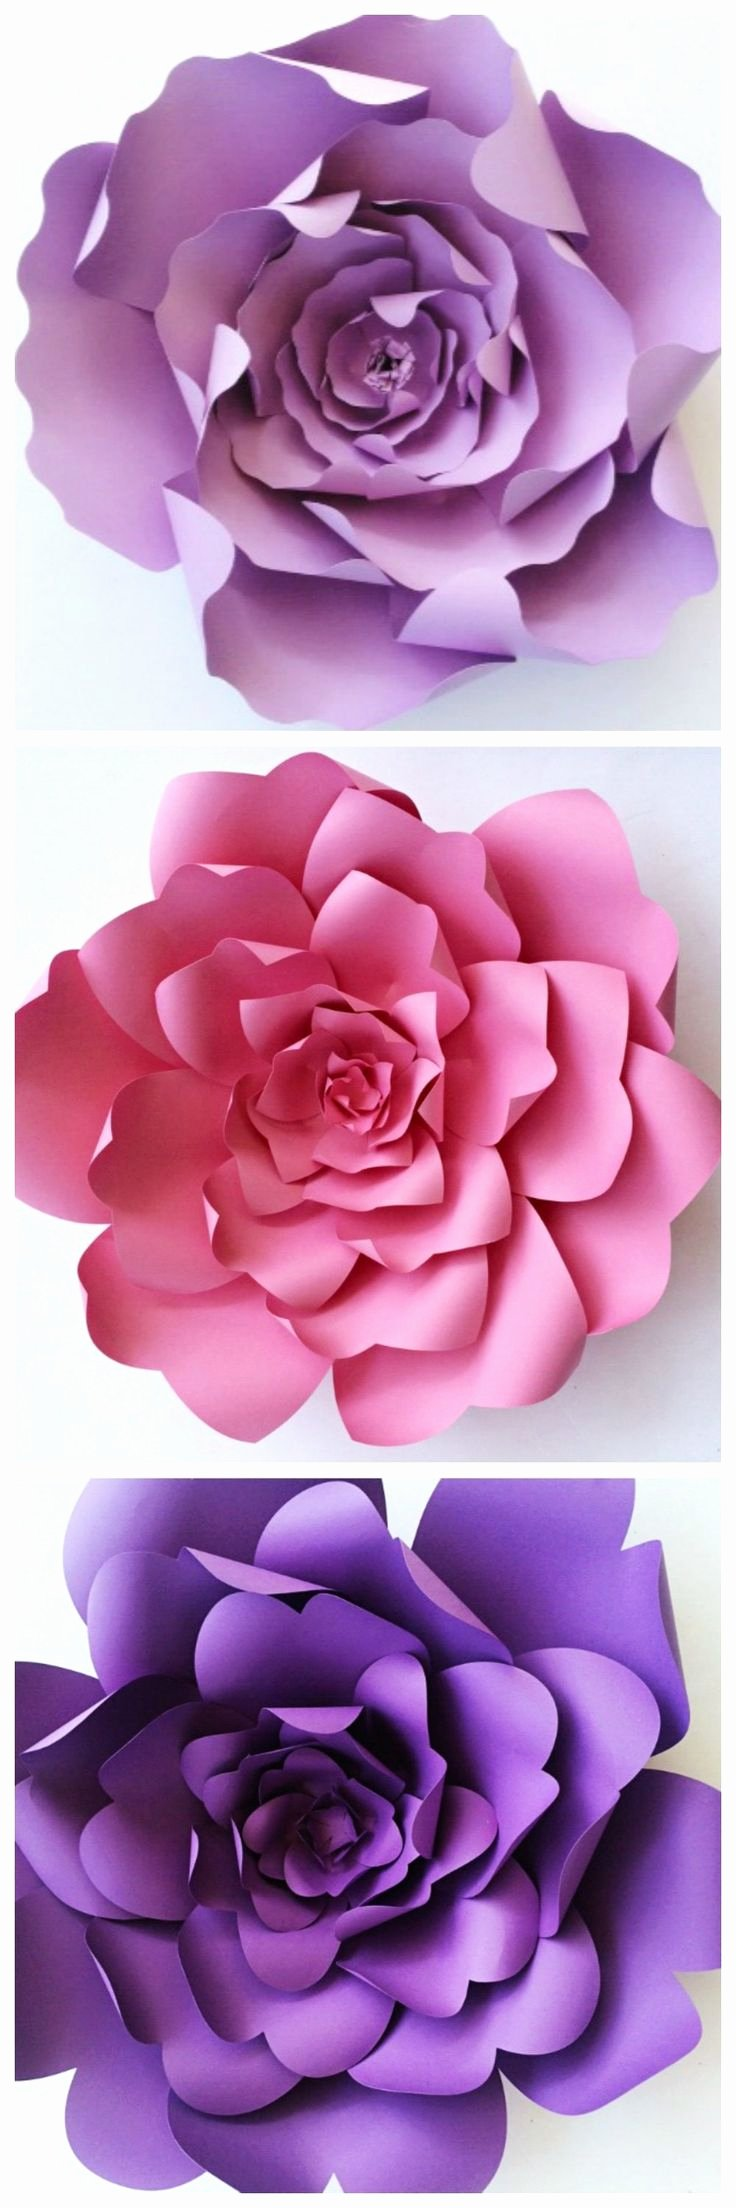 Templates for Paper Flowers Lovely 17 Best Images About Giant Paper Flowers On Pinterest